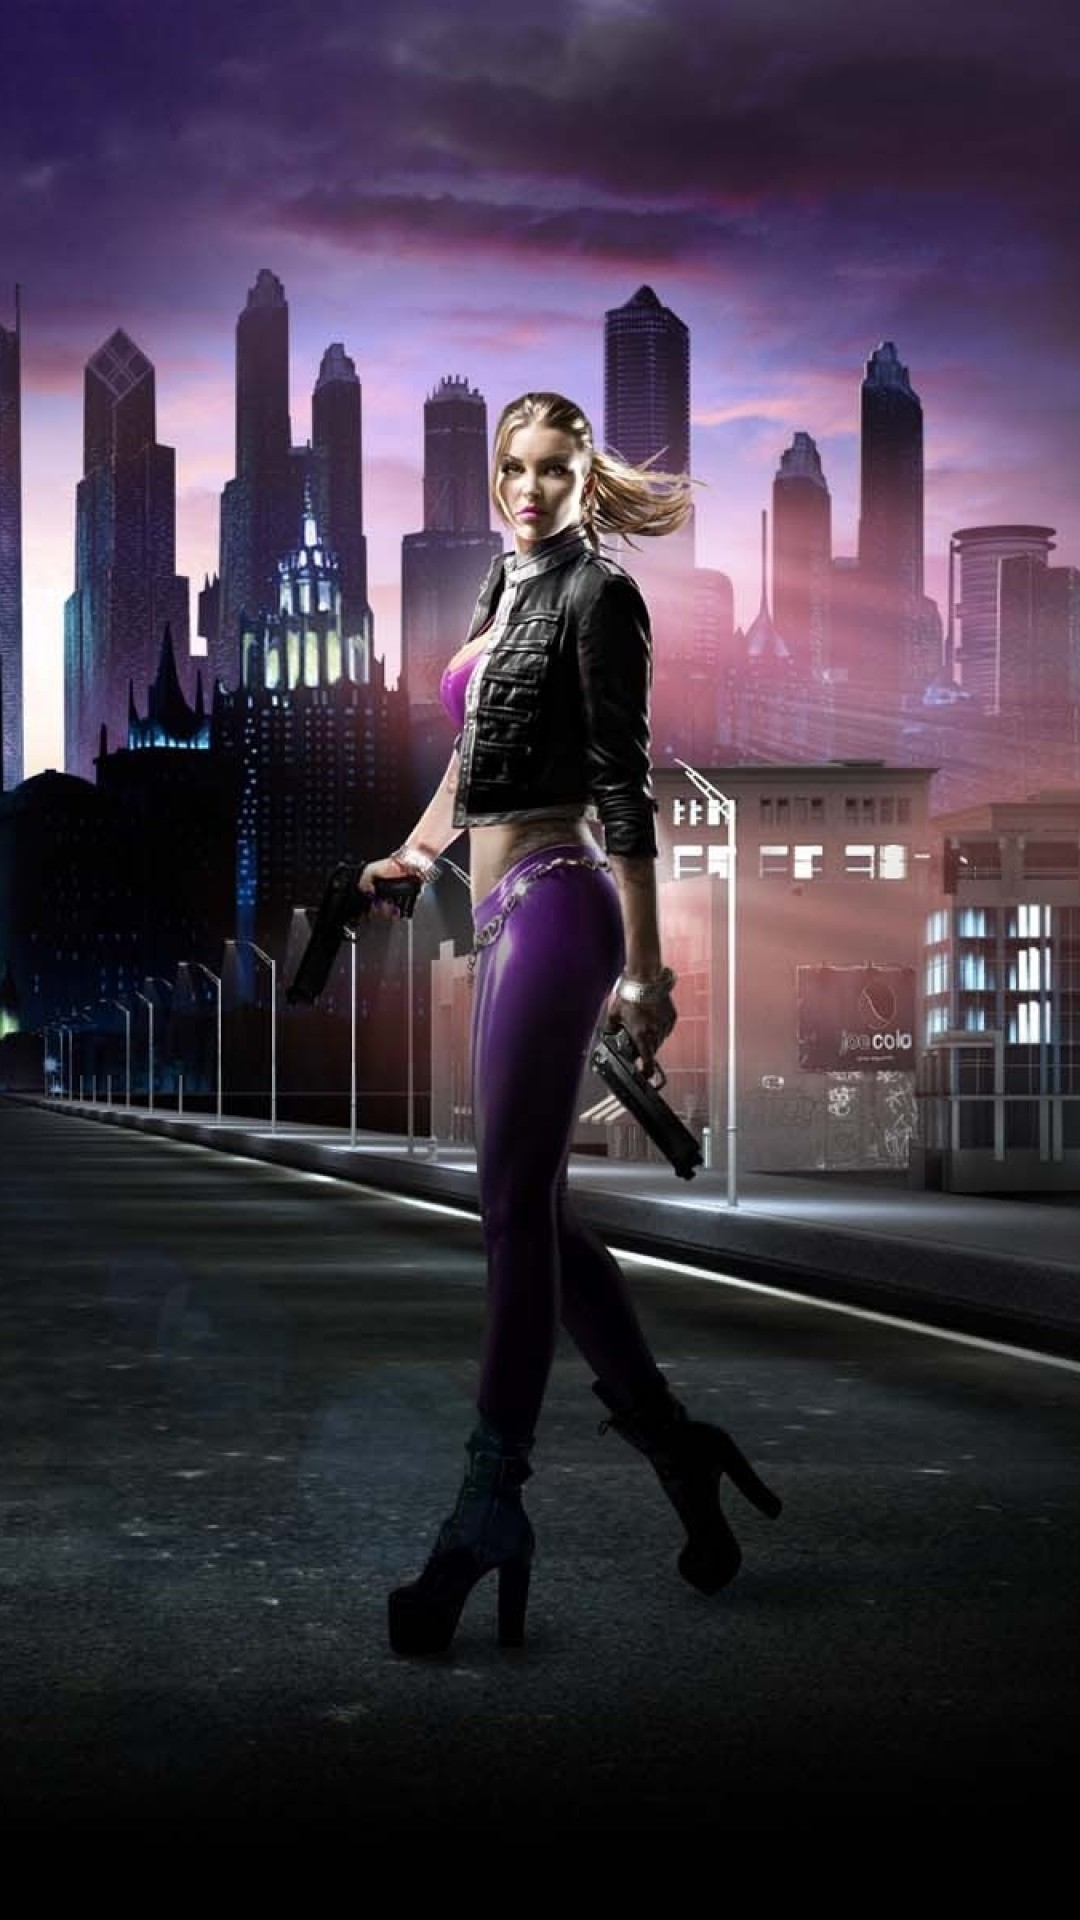 1080x1920 Preview wallpaper saints row, girl, road, city, night